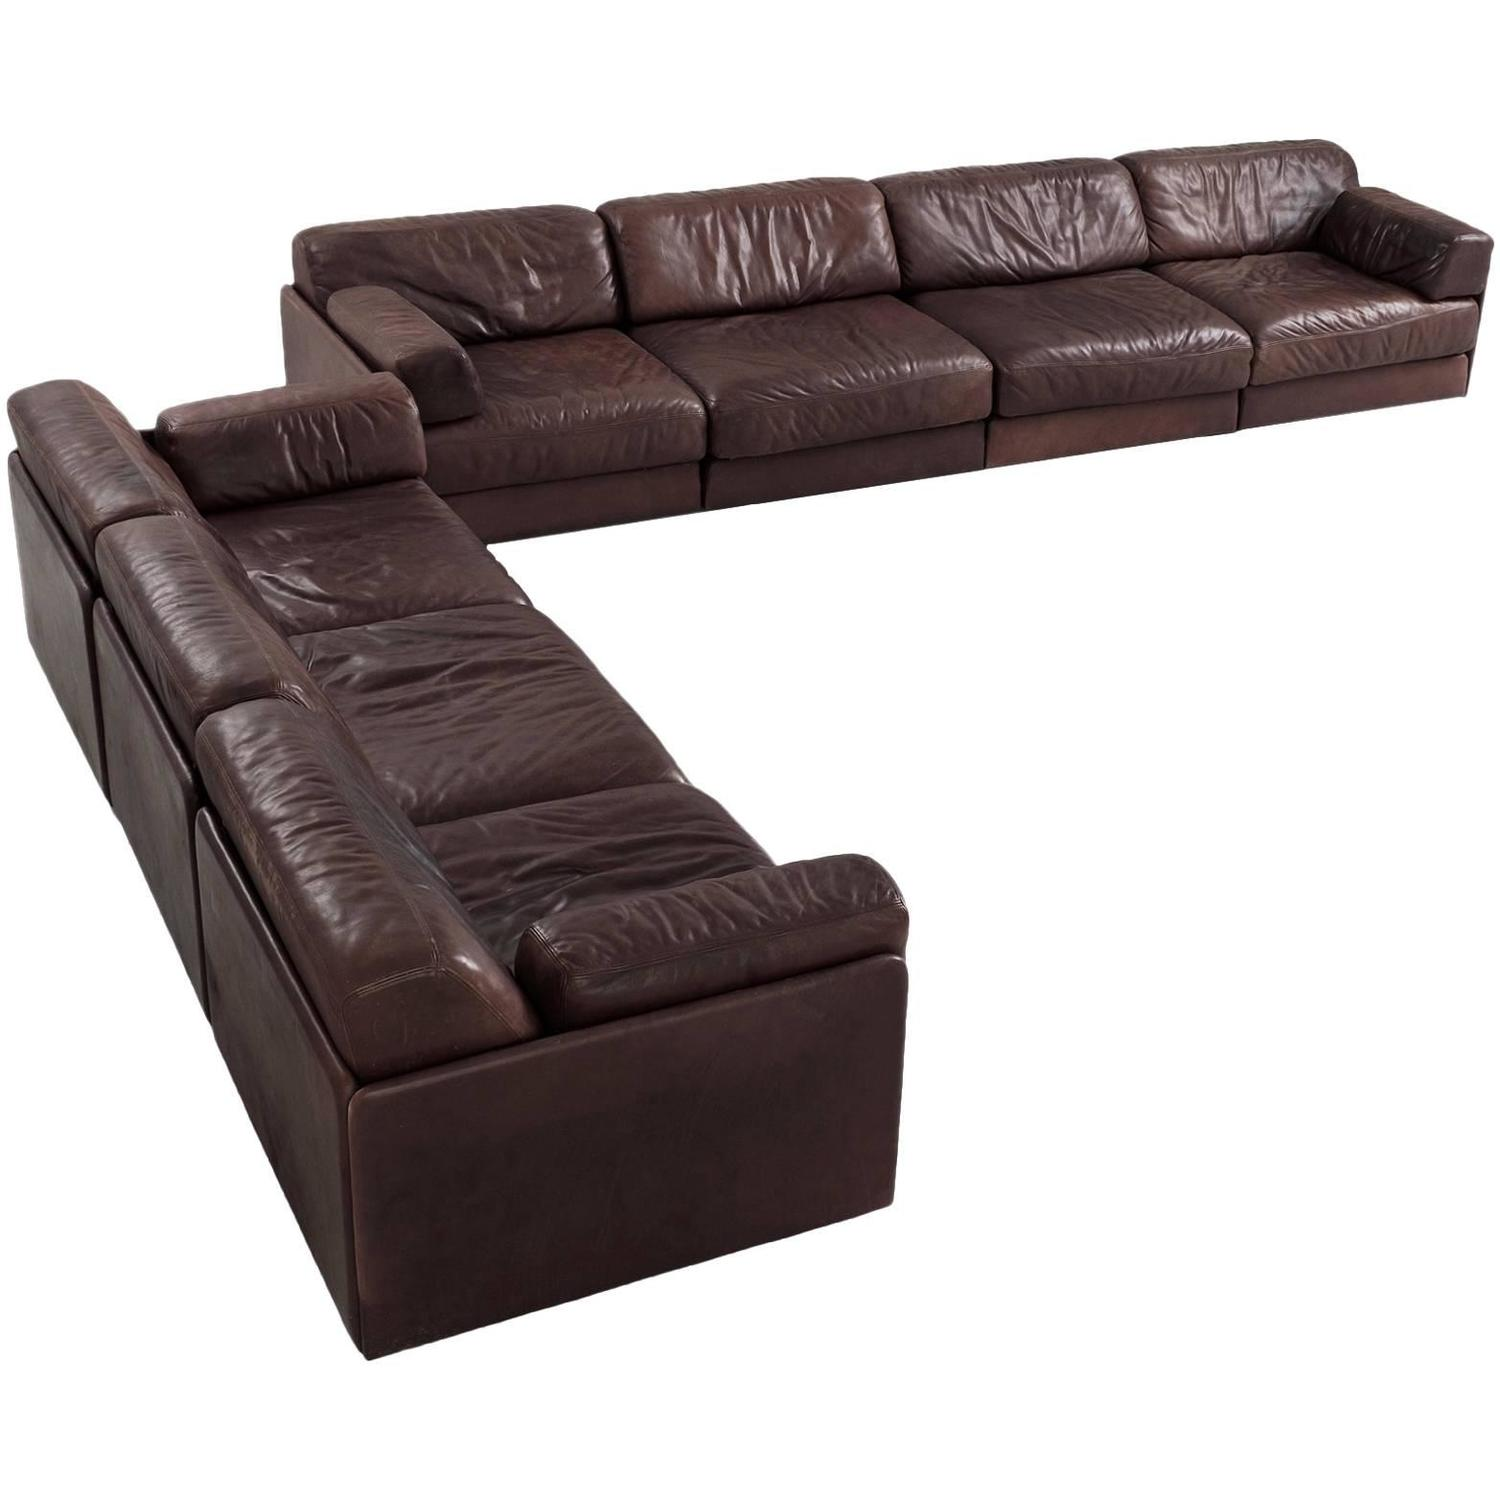 Modular Furniture Sofa: Sofa Modular Modular Sofa Contemporary Cotton Leather